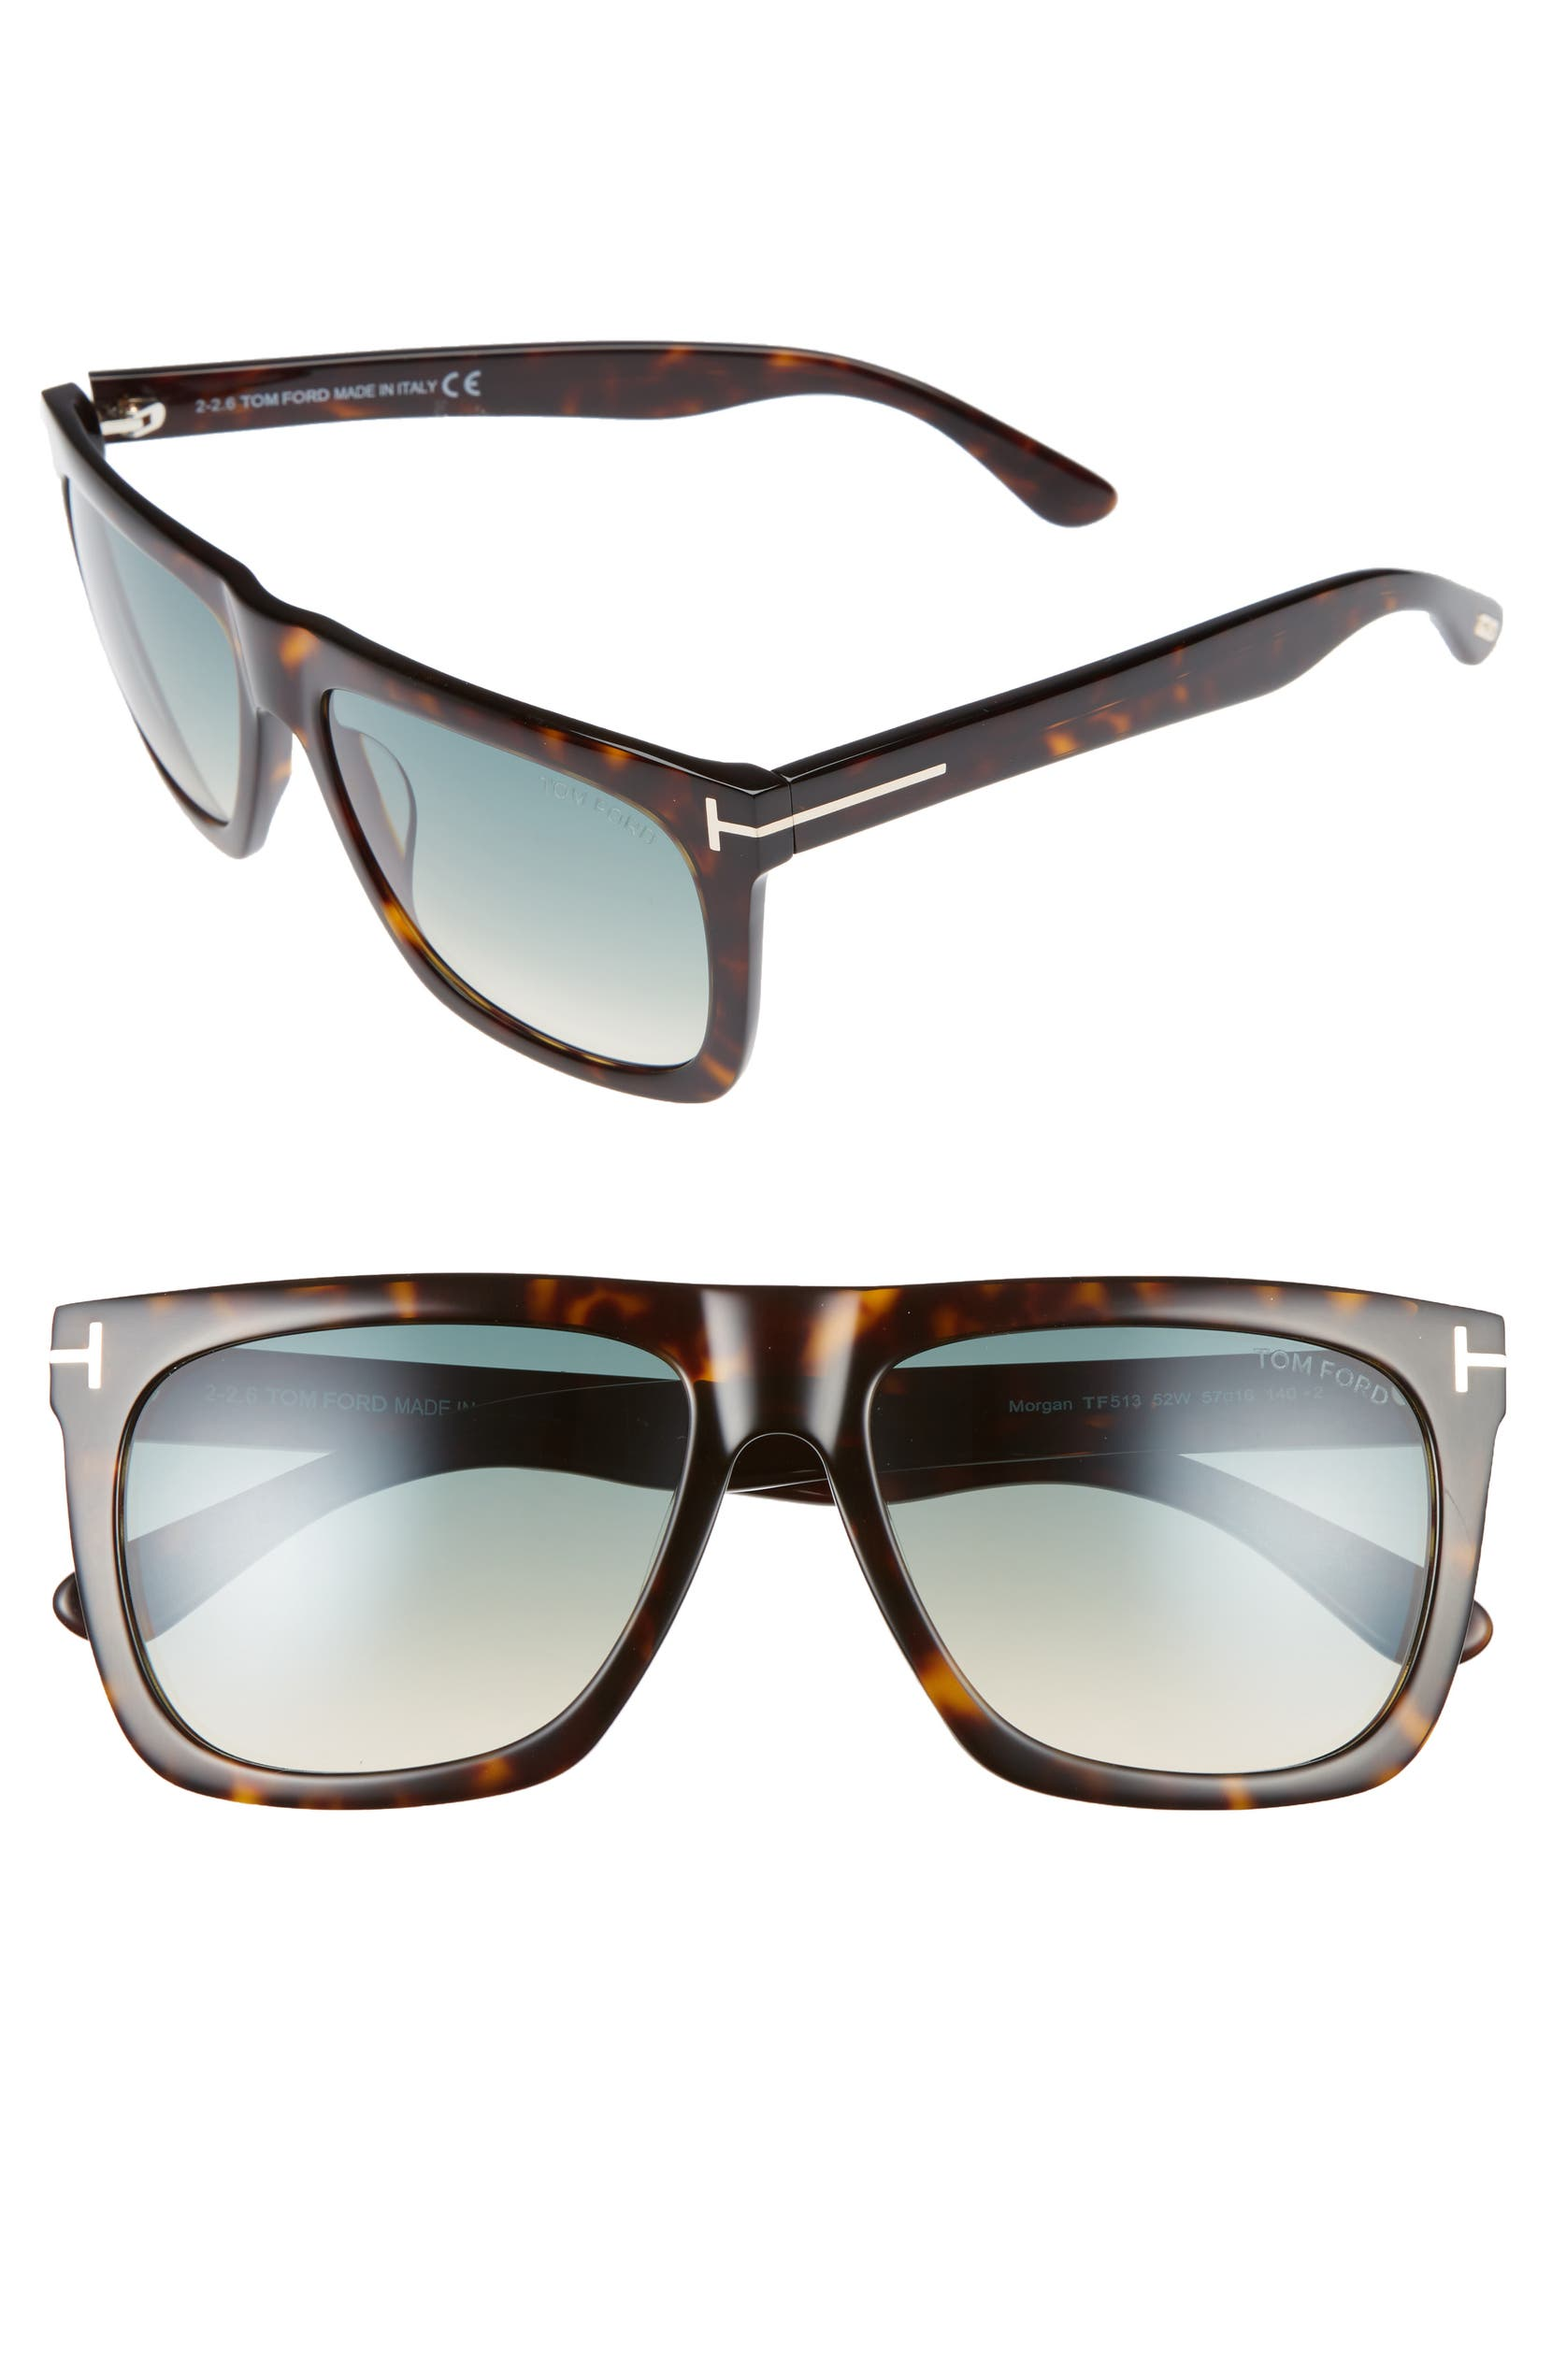 66b4ef845e Tom Ford Morgan 57mm Sunglasses